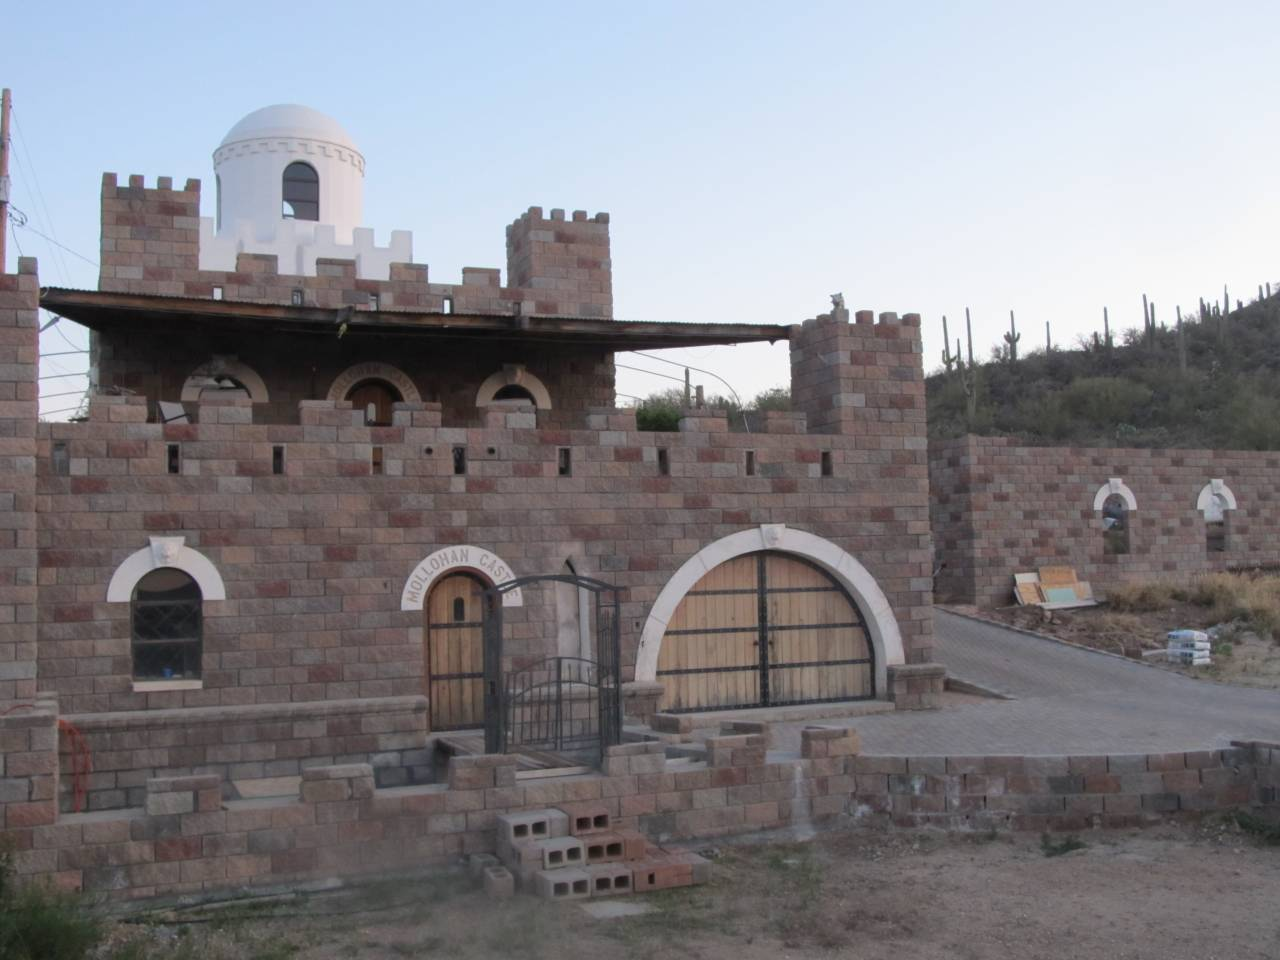 Mollohan Castle bed and breakfast in Arizona